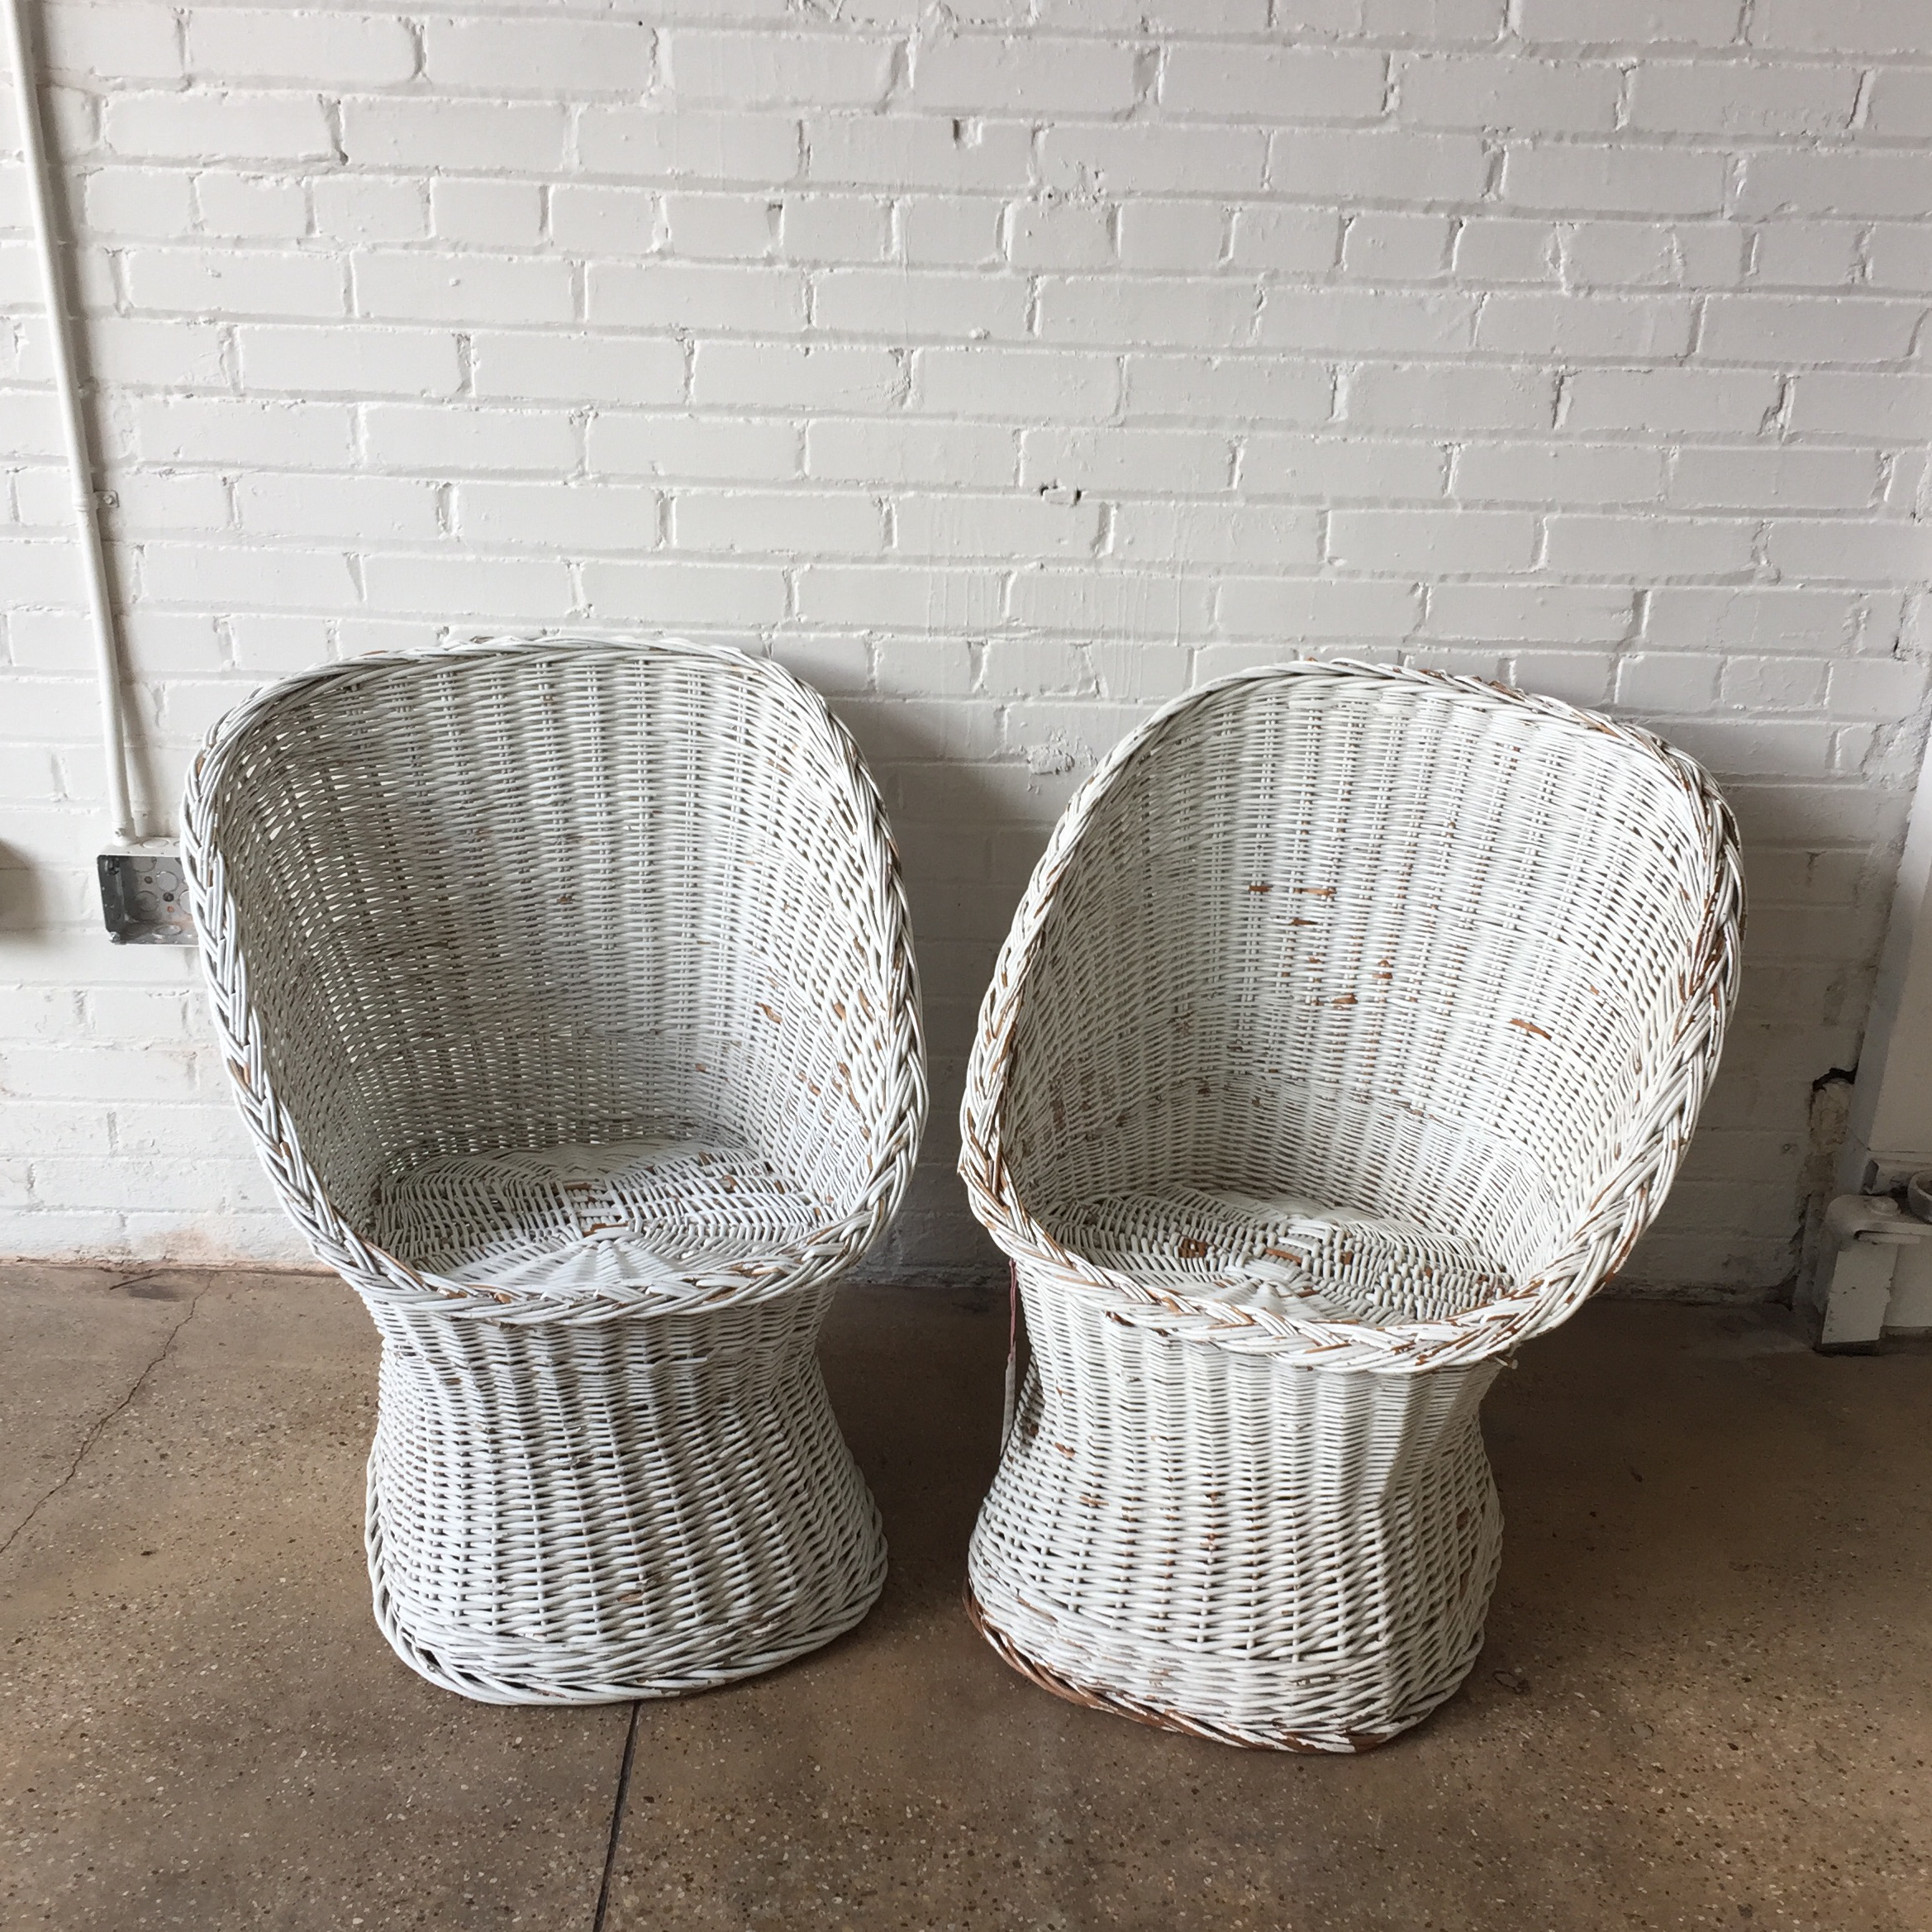 Put This Pair Of White Wicker Chairs Anywhere! Theyu0027re Light, Easy To